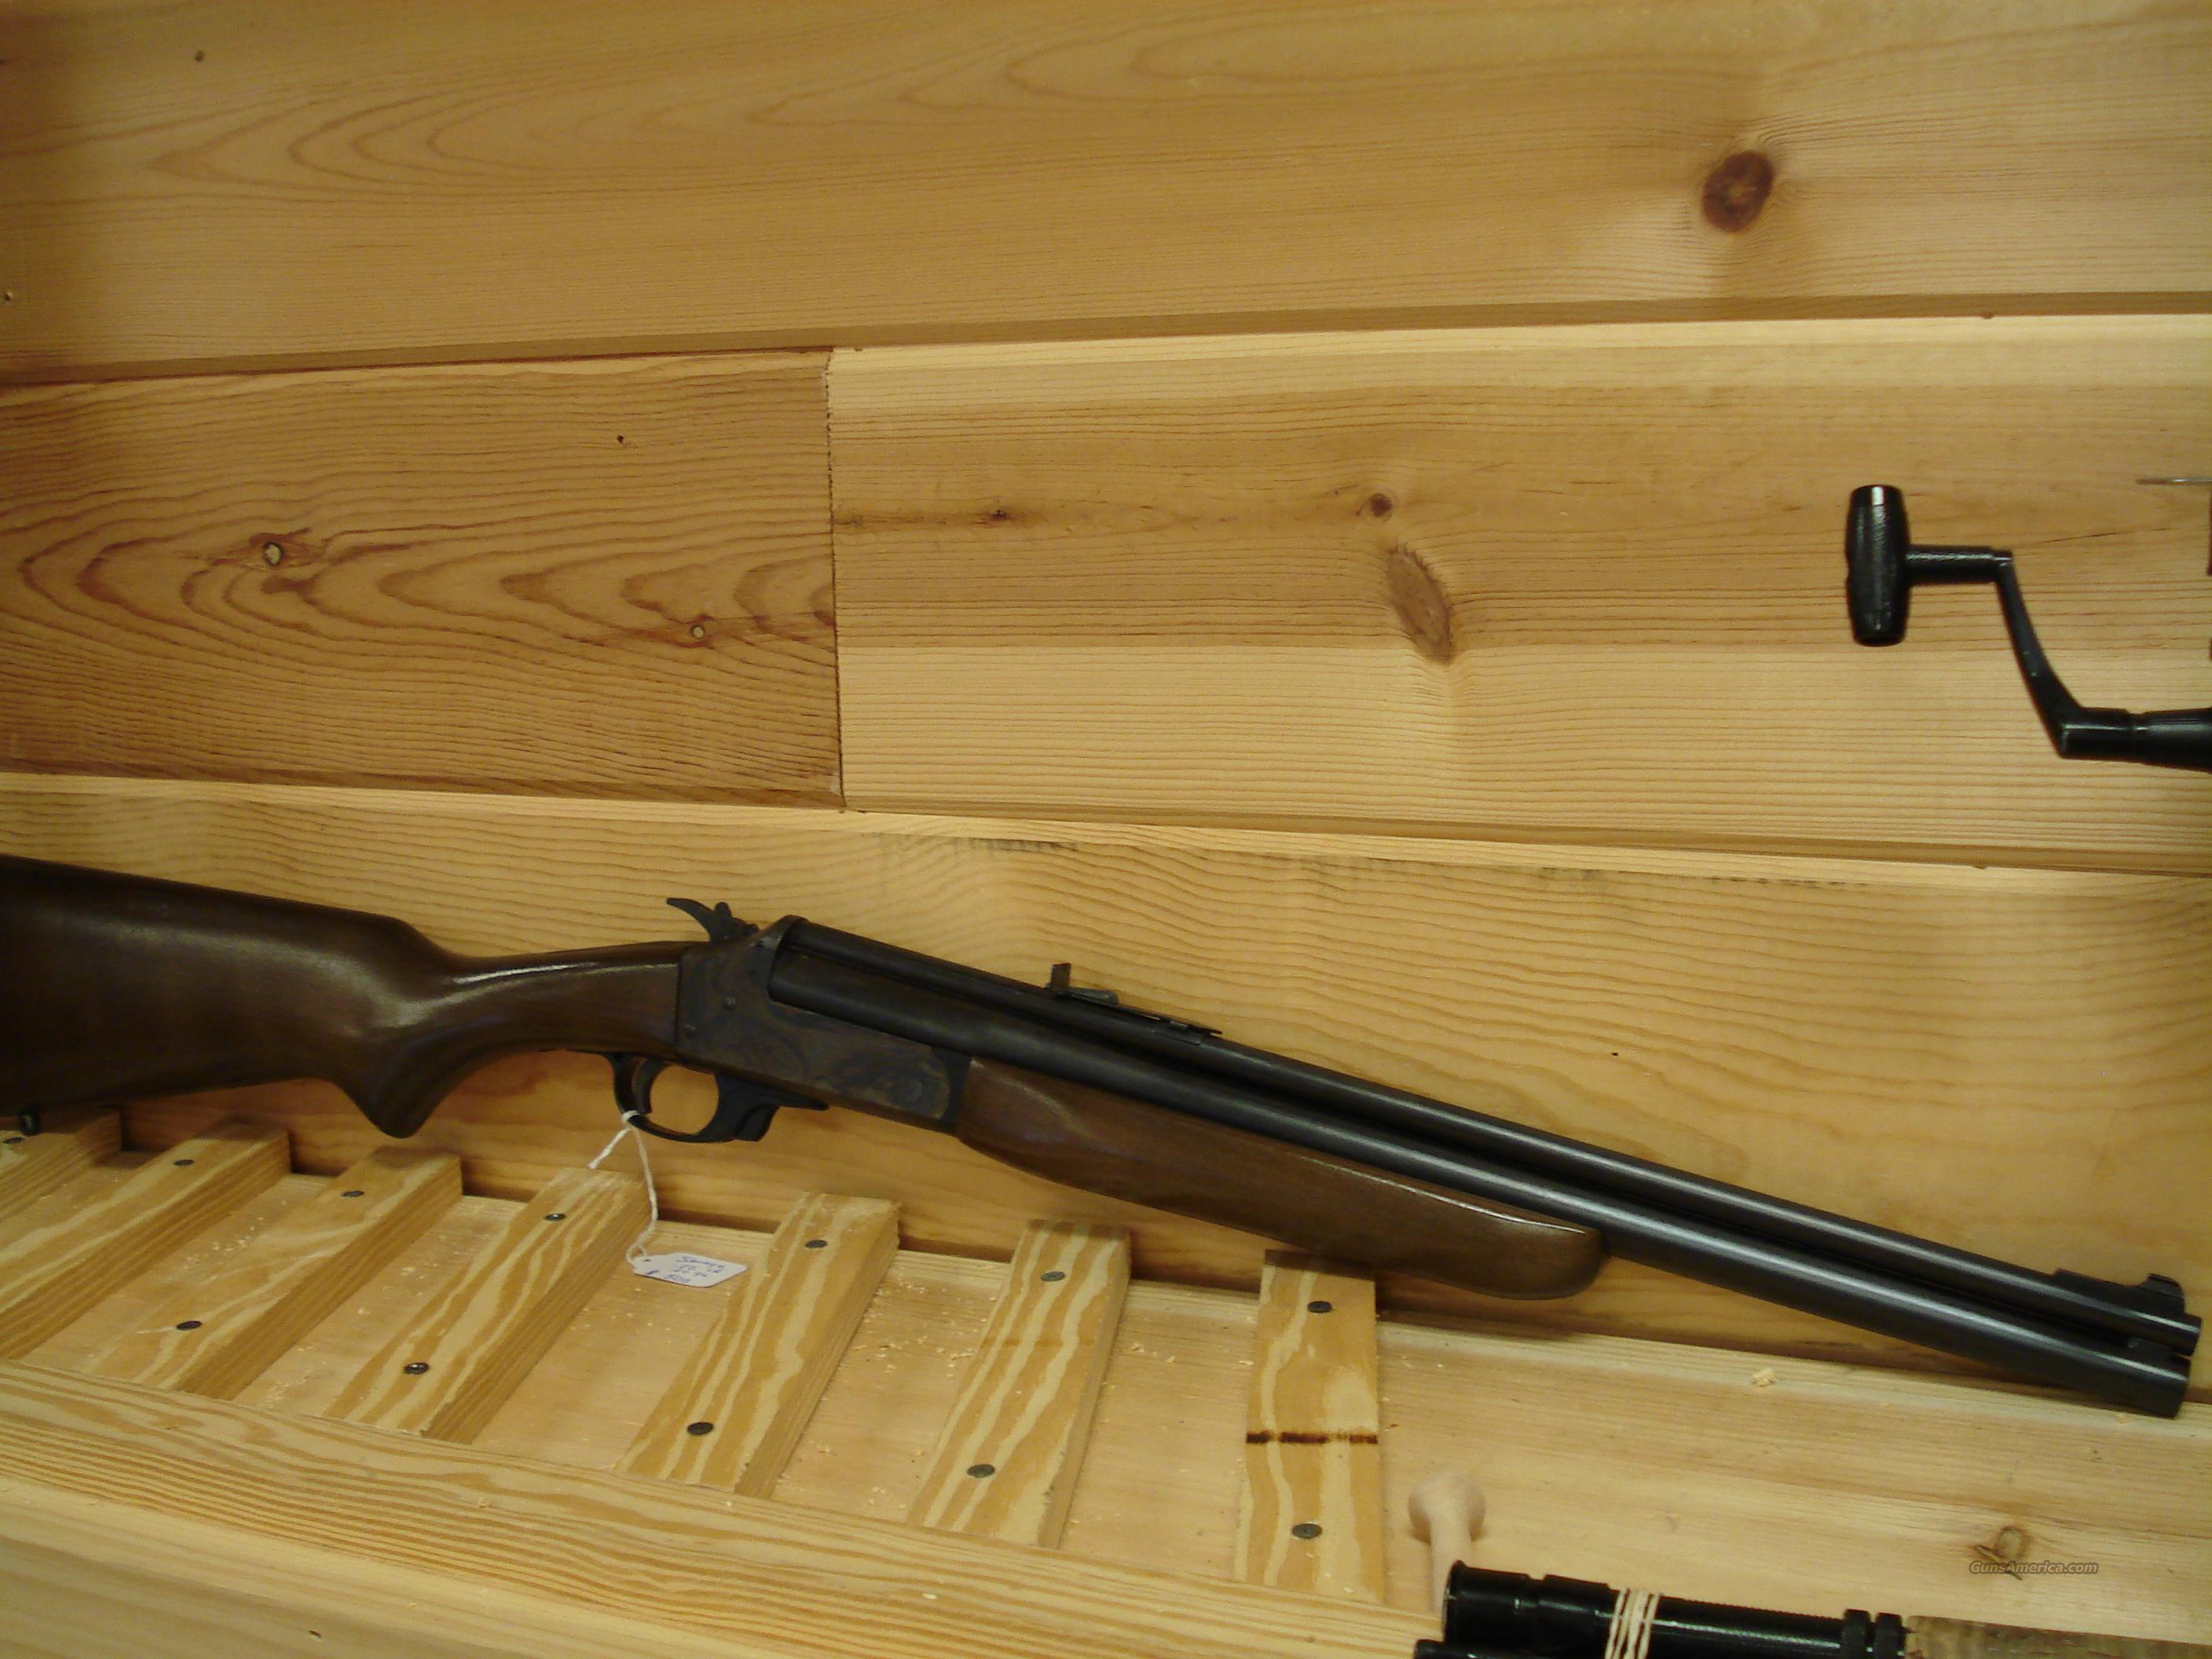 Savage 24C, 22lr/20ga, Campers Companion  Guns > Rifles > Savage Rifles > Other